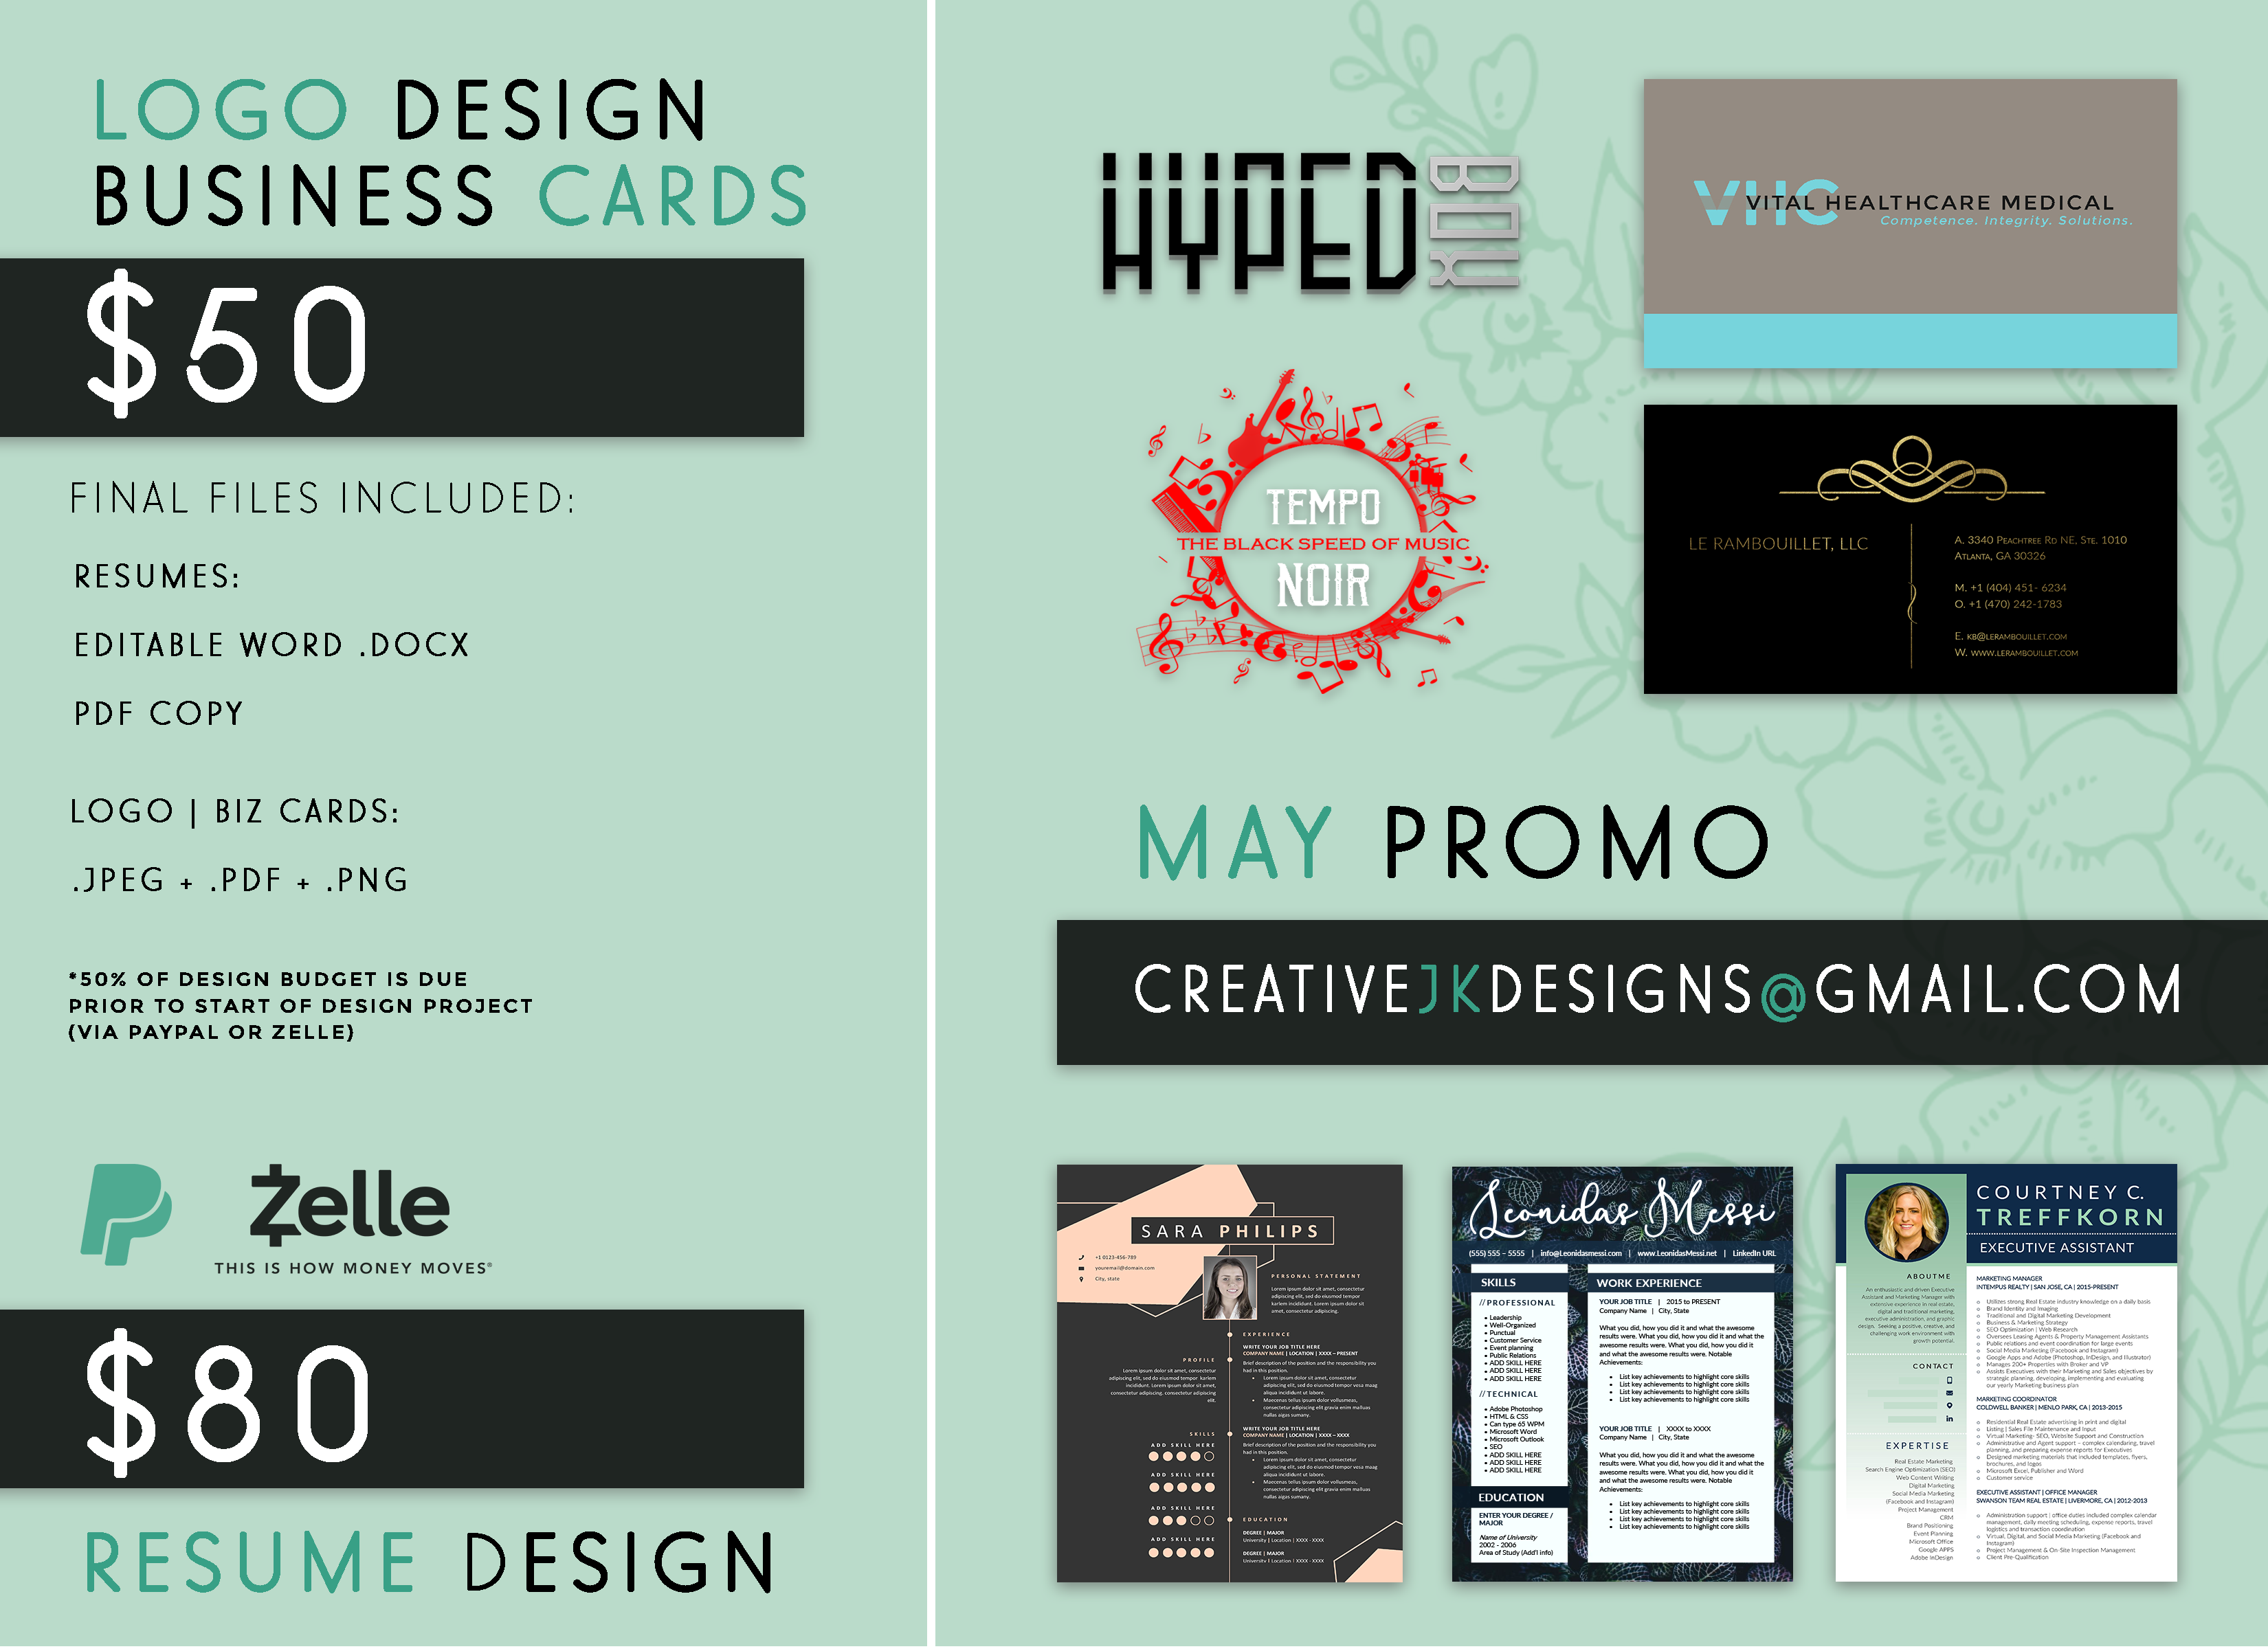 For Logo Designs And Business Cards Creativejkdesigns Gmail Com Based On Availability Logo Design Event Planning Logo Event Planning Business